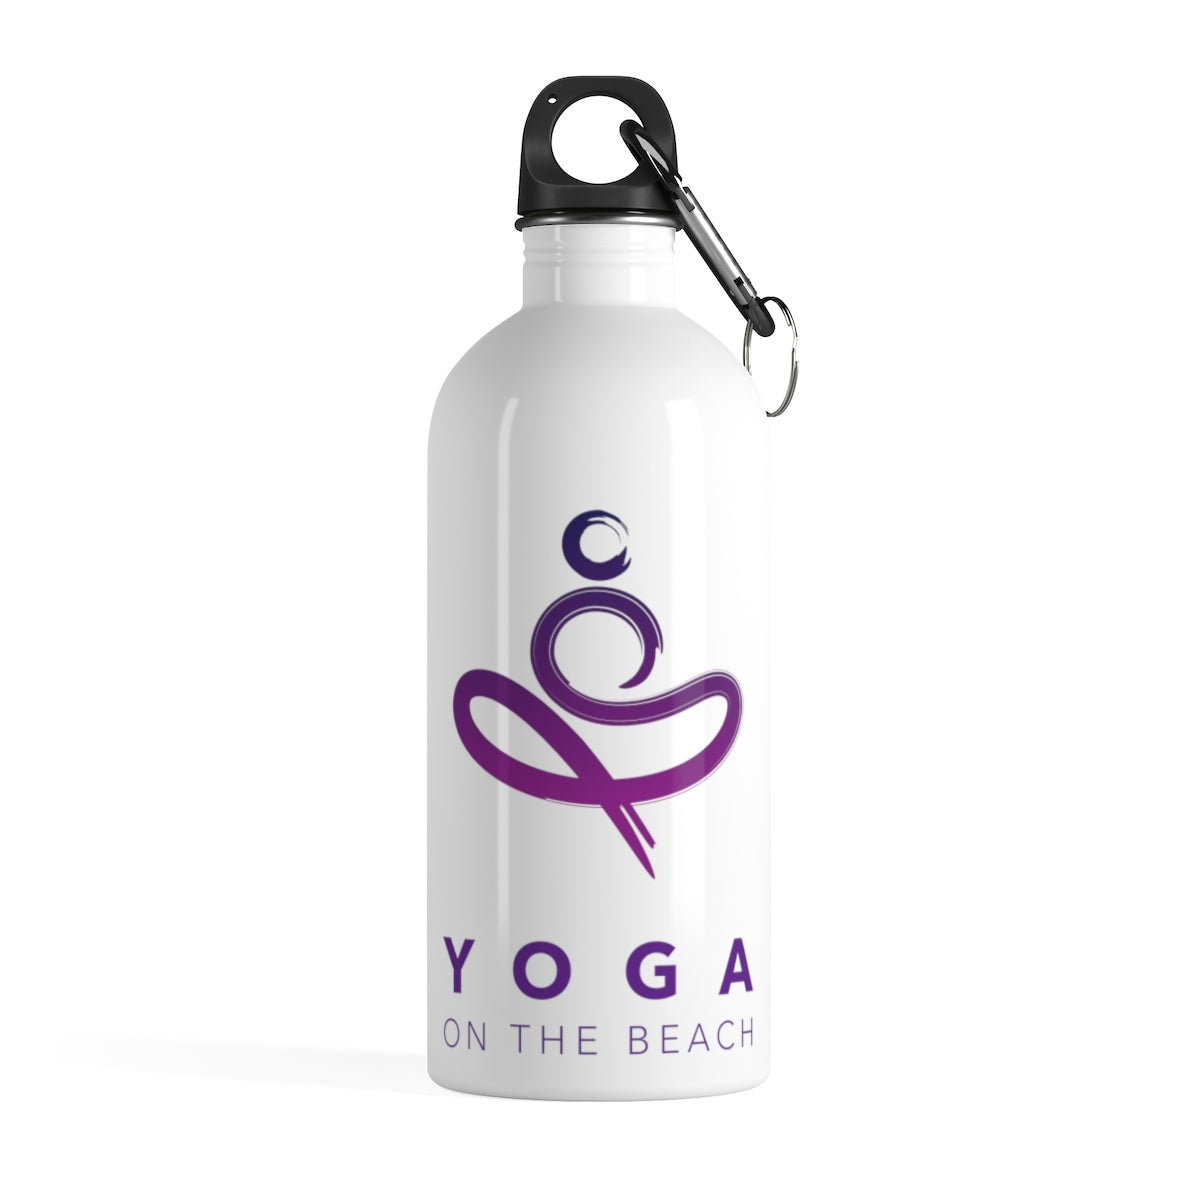 Yoga on the Beach (YOTB) - Stainless Steel Water Bottle, Bottle, YOGA on the Beach - MerchHeaven.com